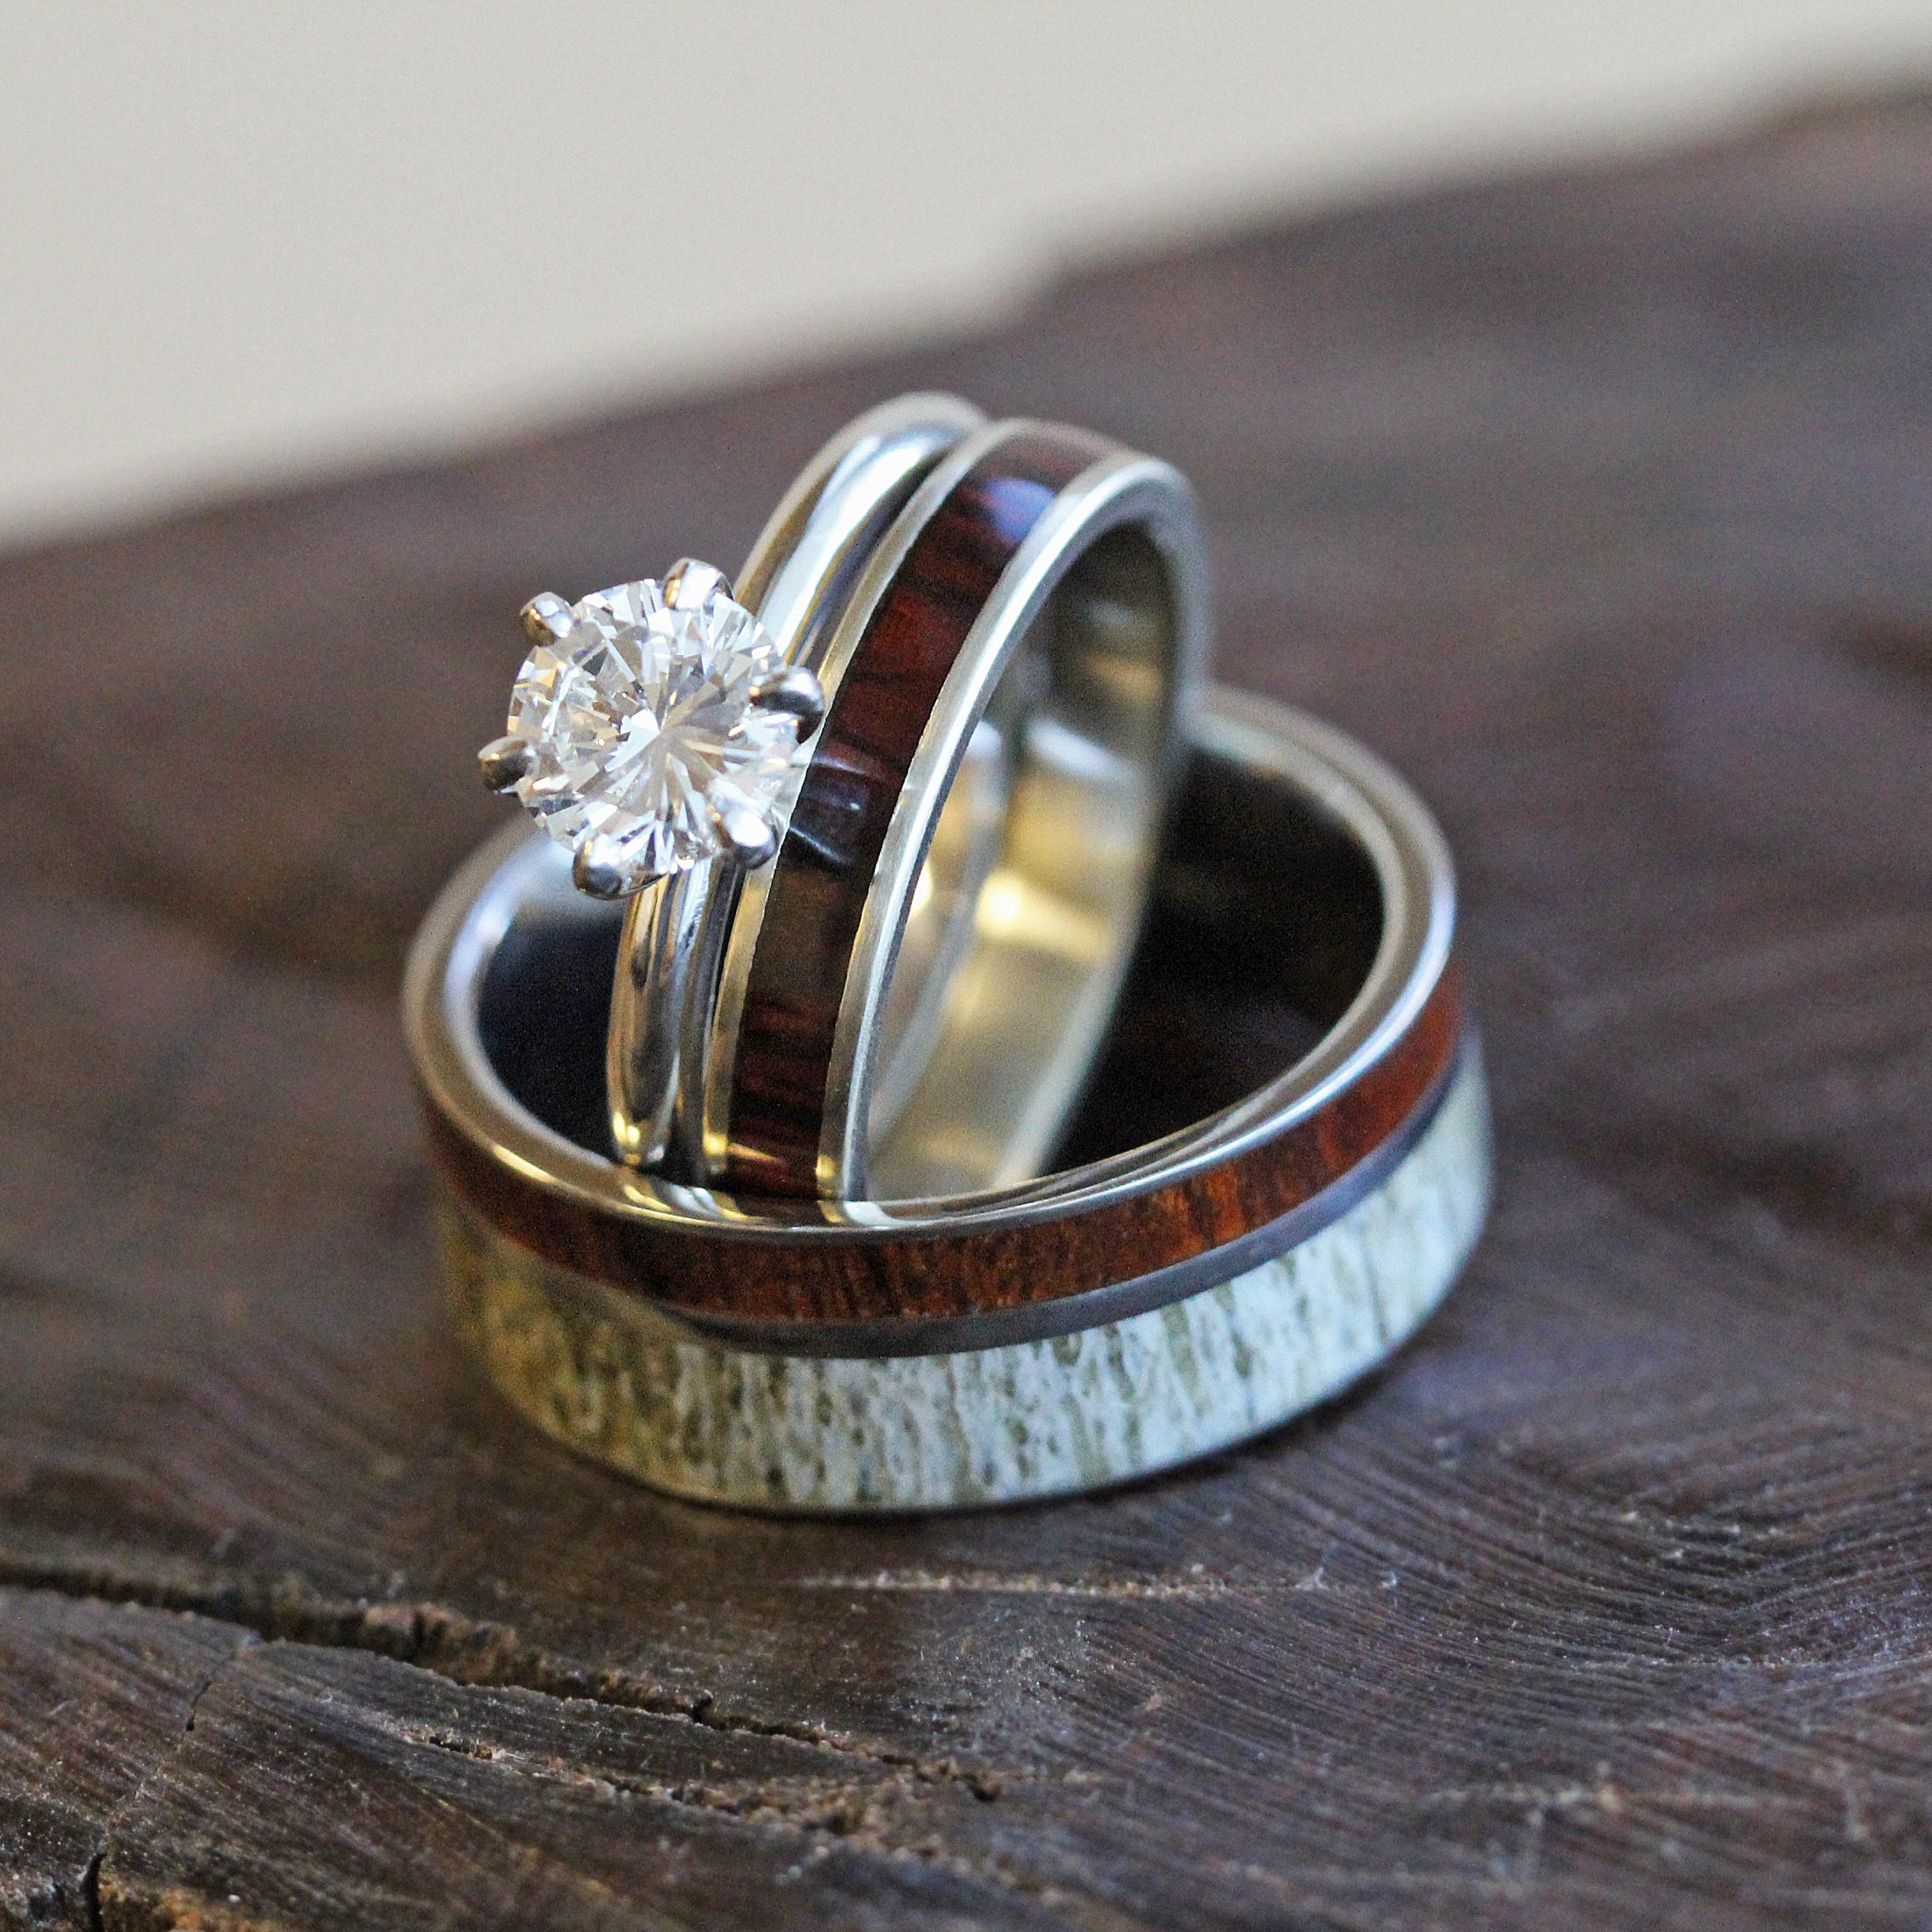 Antler And Wood Wedding Ring Set With Diamond Engagement